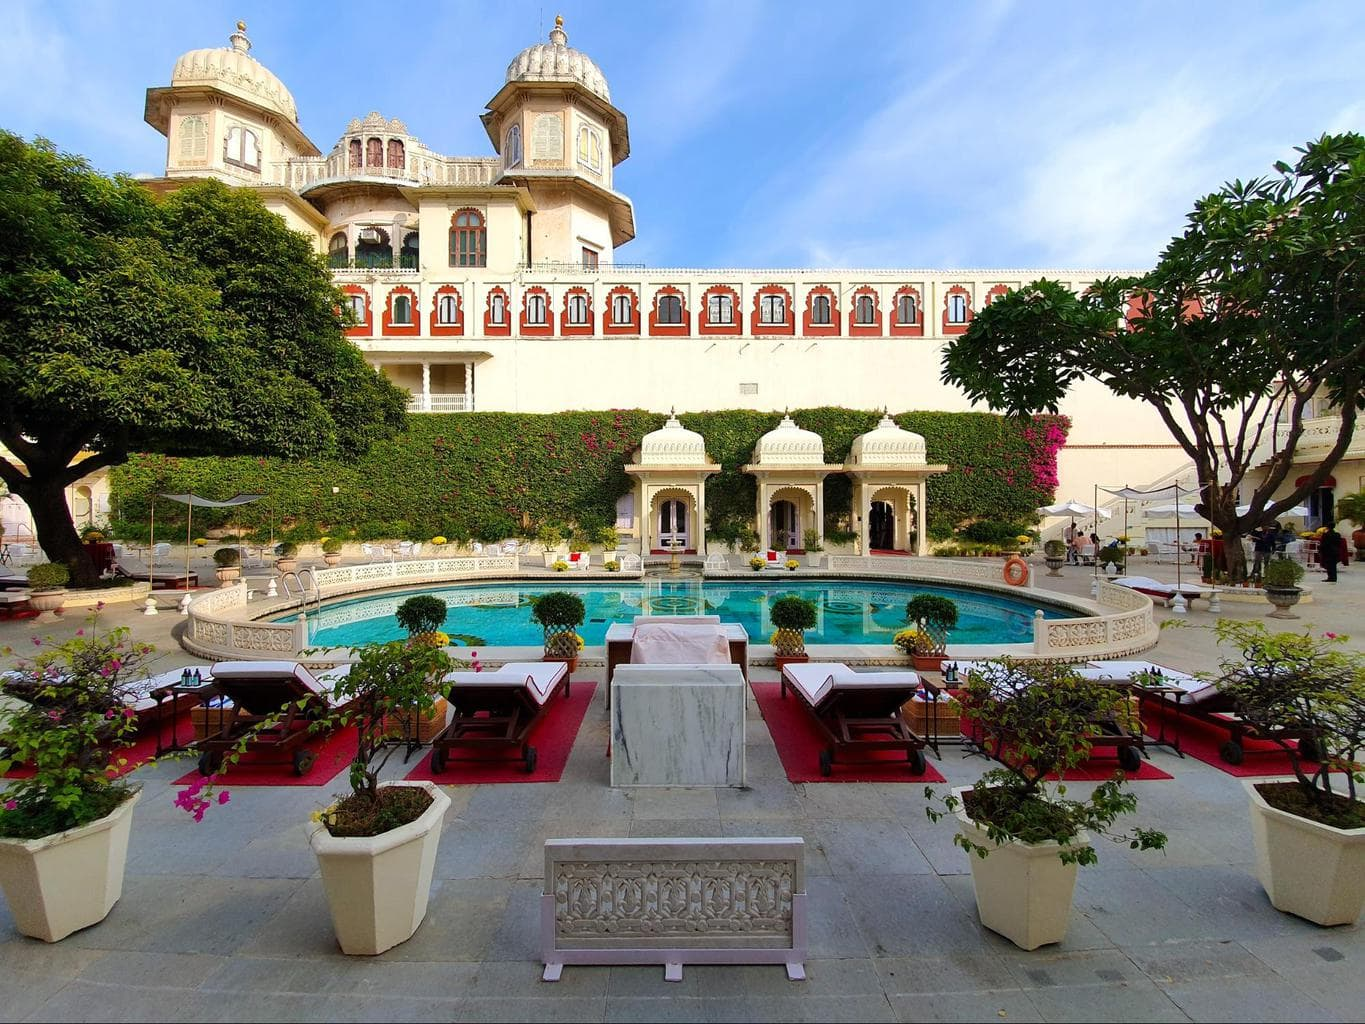 The pool courtyard at Shiv Niwas Palace